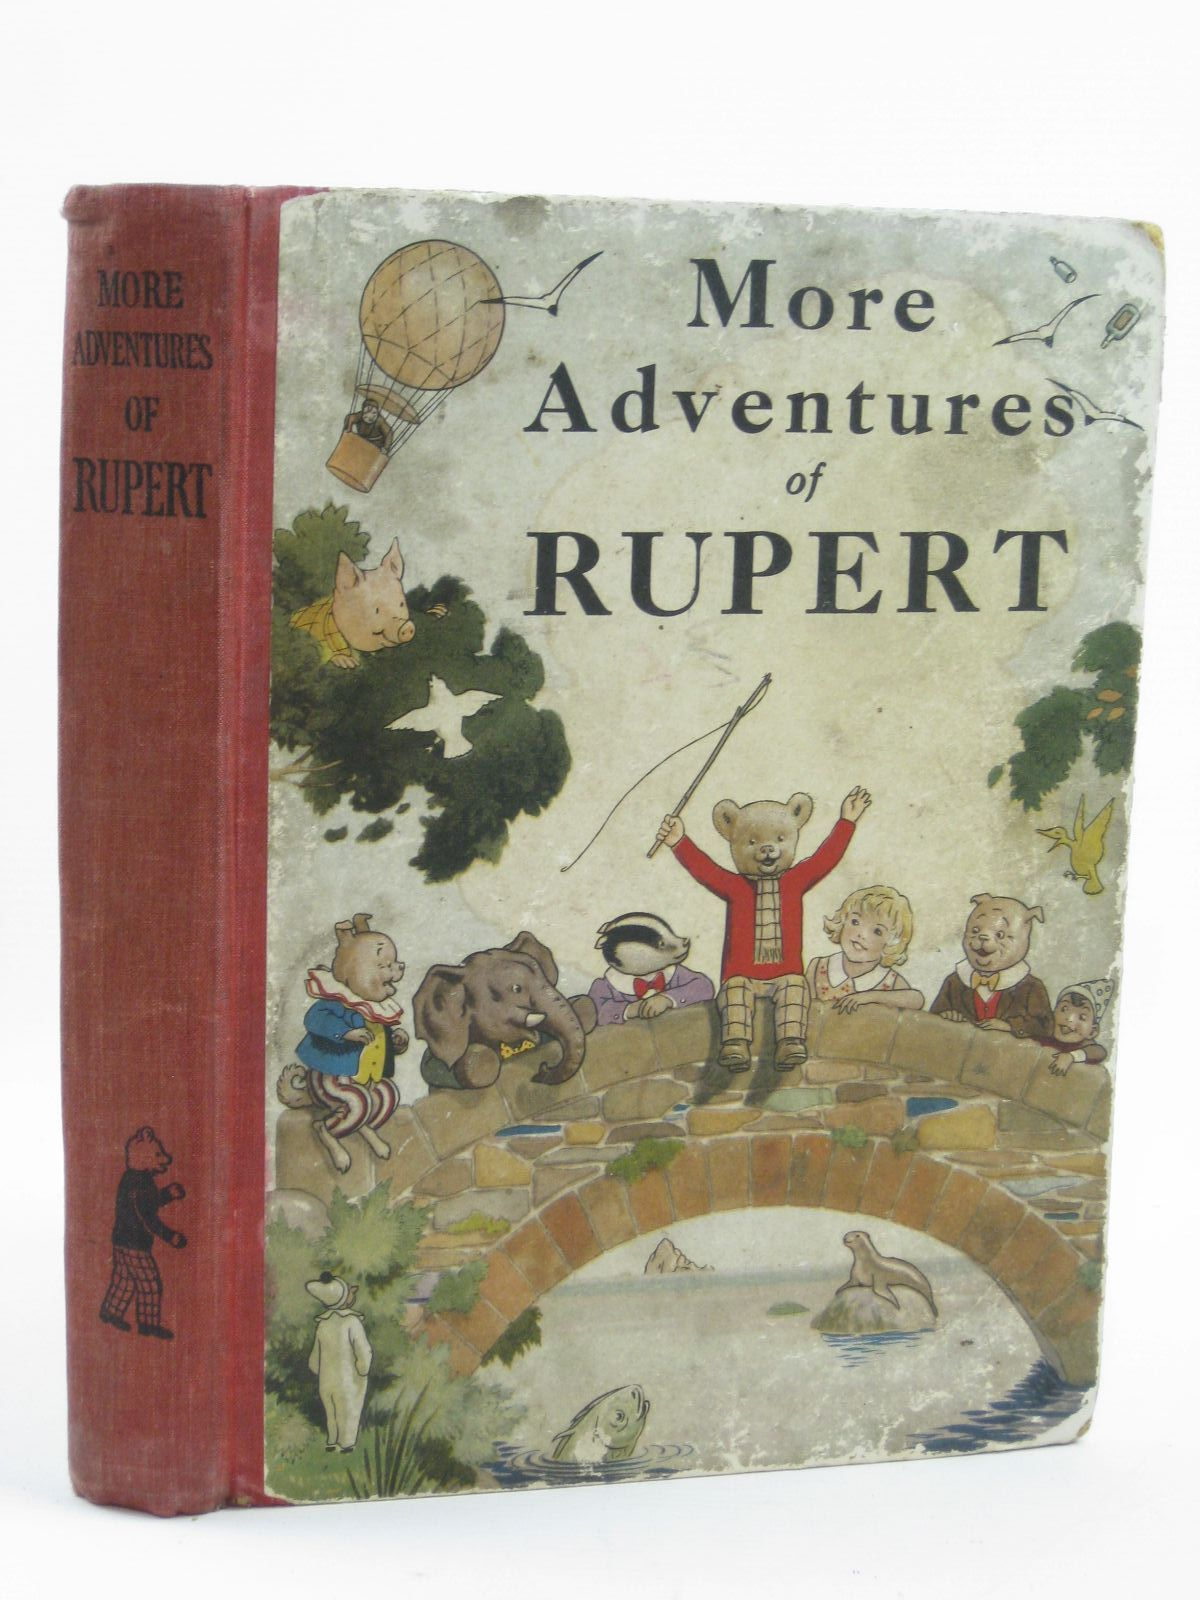 Photo of RUPERT ANNUAL 1937 - MORE ADVENTURES OF RUPERT written by Bestall, Alfred illustrated by Bestall, Alfred published by Daily Express (STOCK CODE: 1406636)  for sale by Stella & Rose's Books